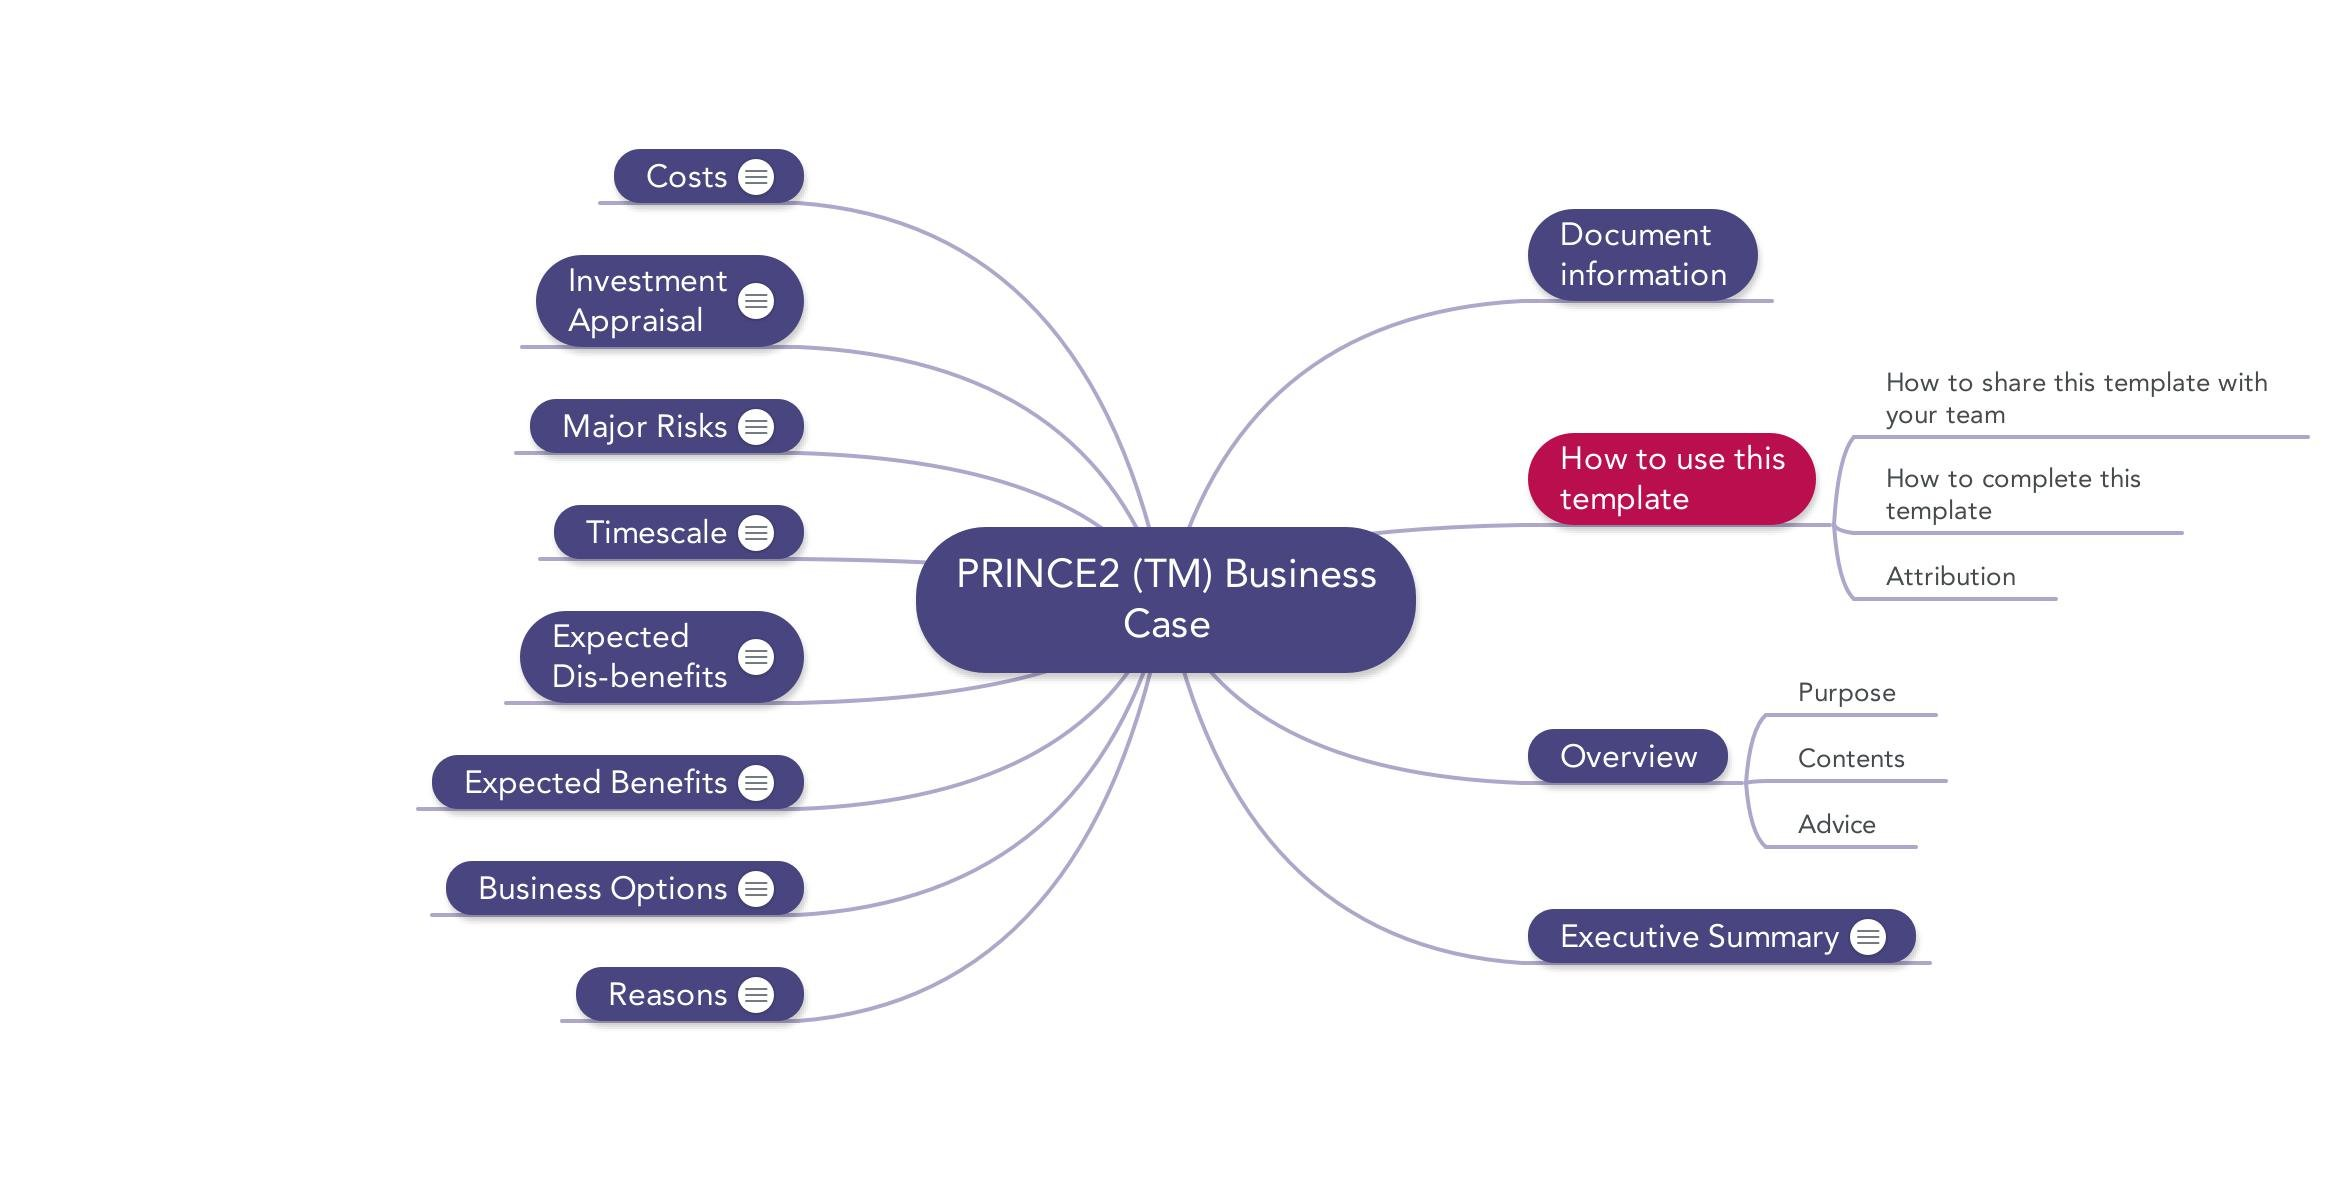 Prince2 templates mind maps word excel and pdf download the business case in word pdf or mindmap format wajeb Images